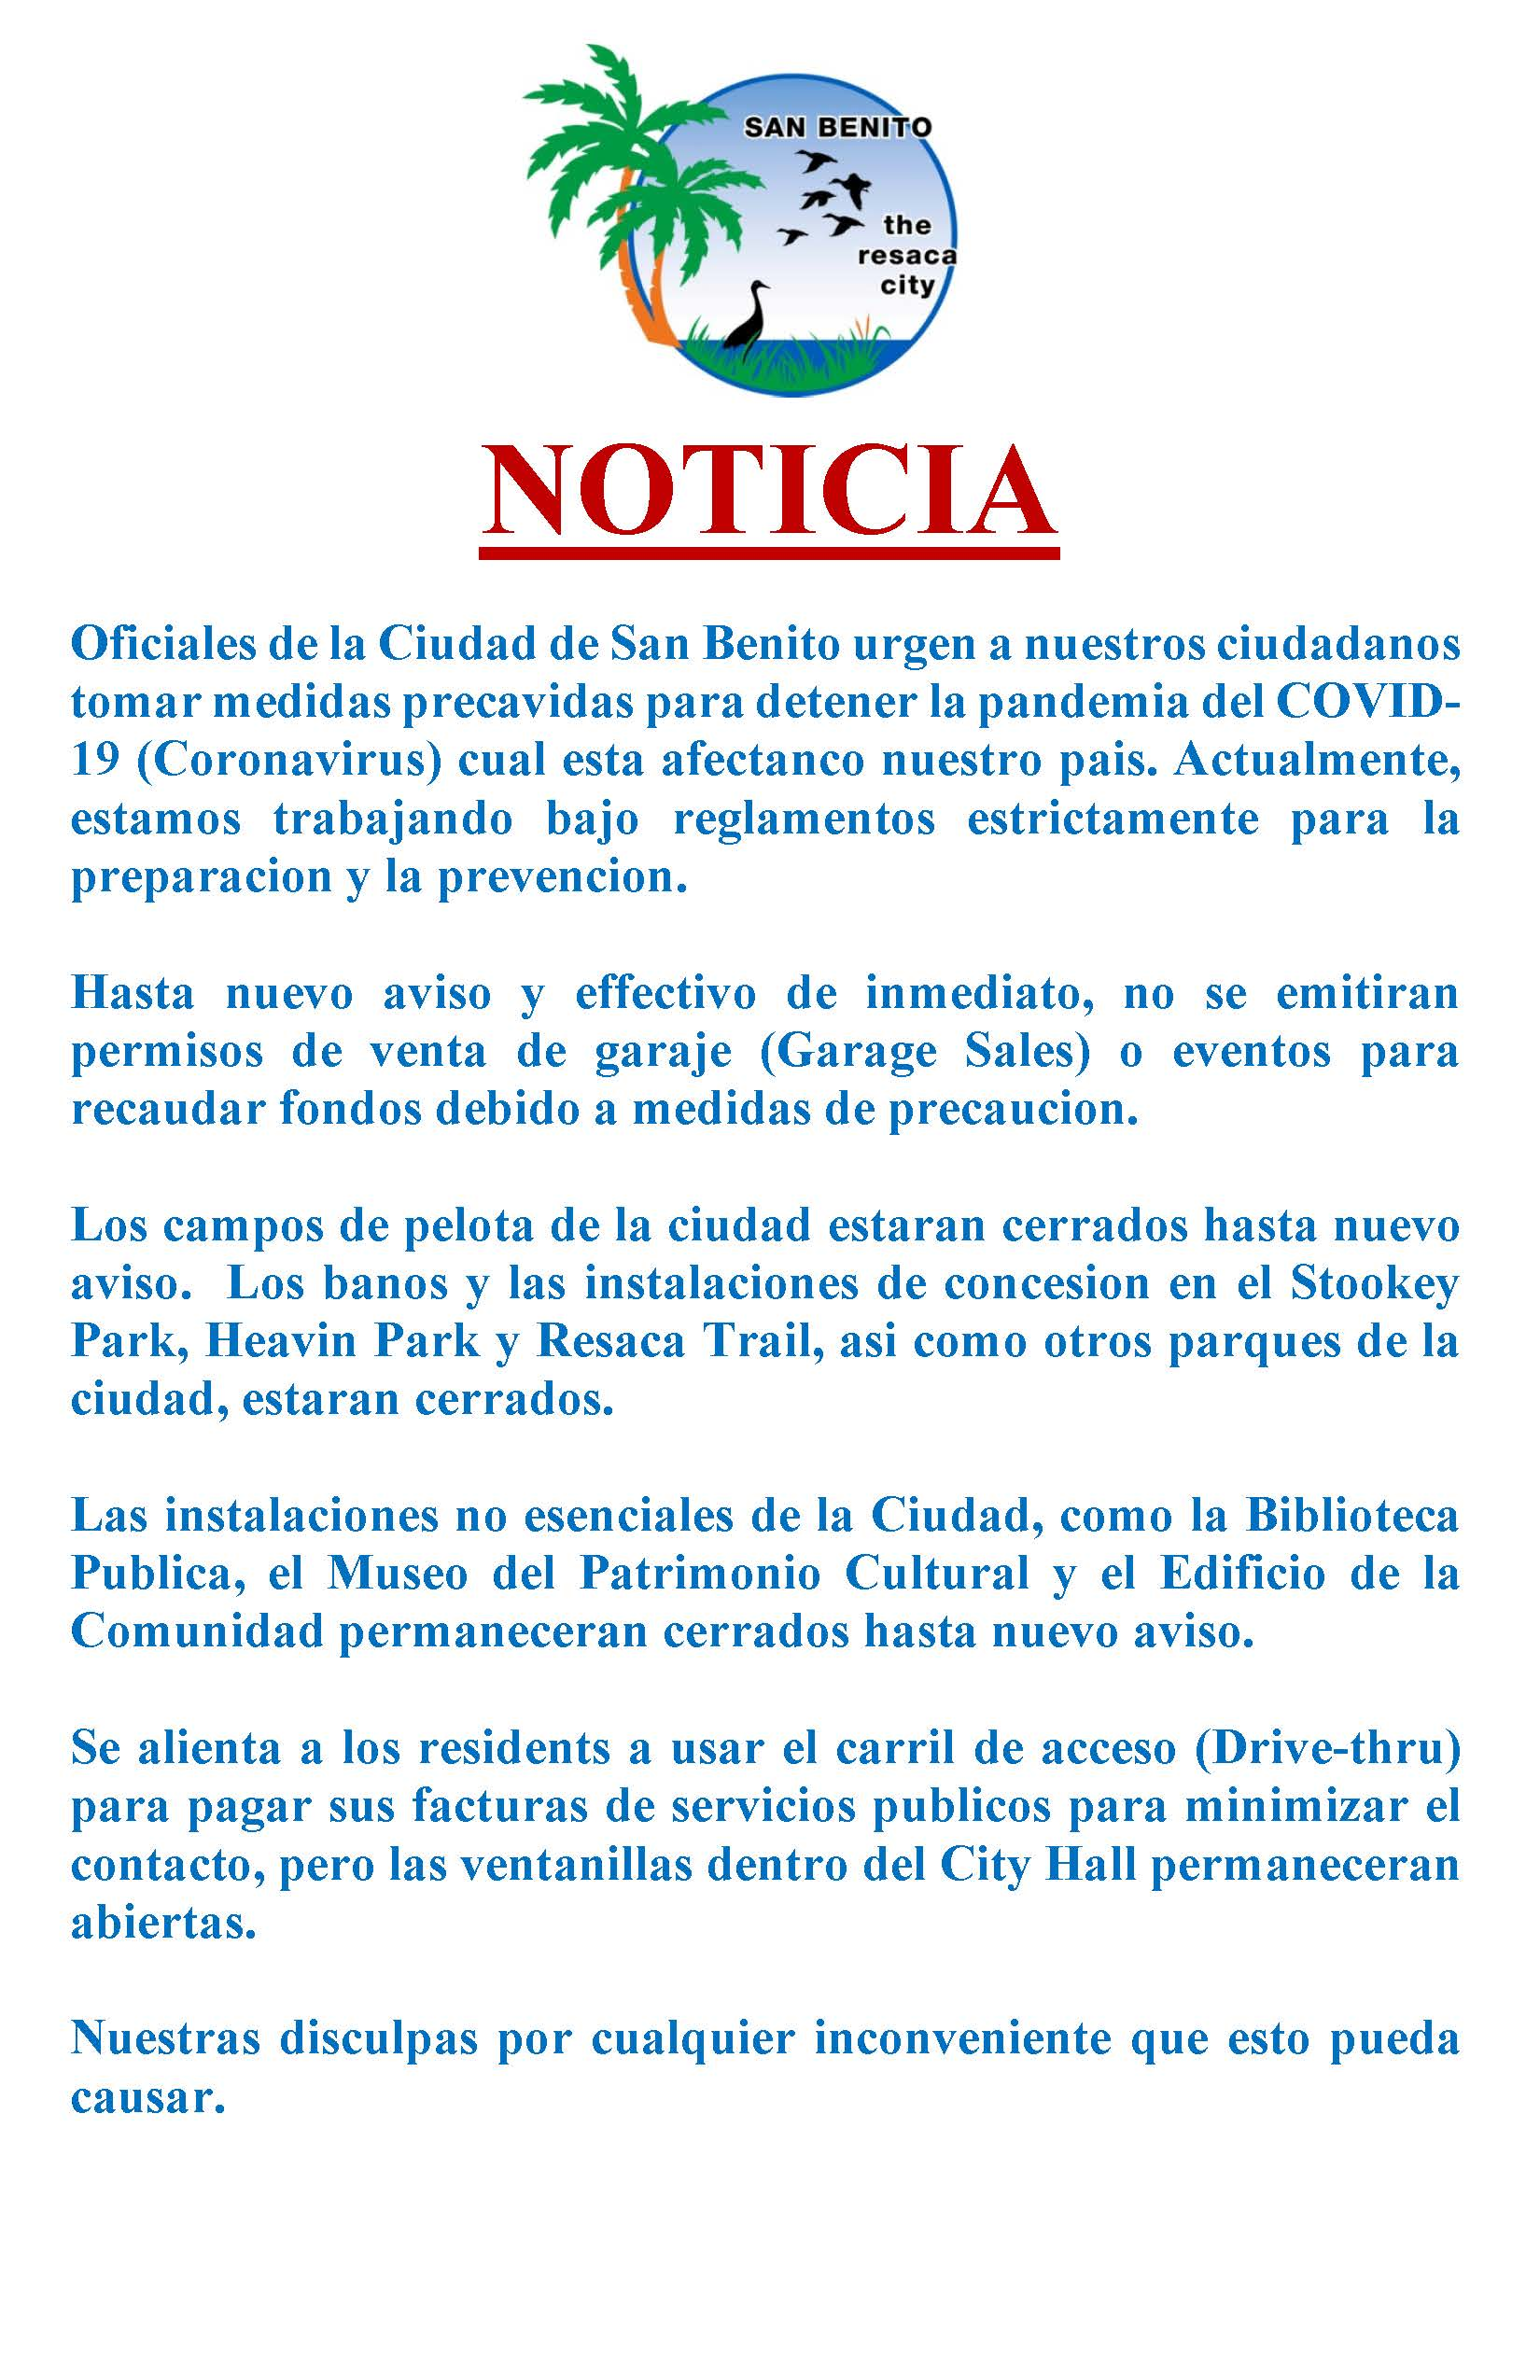 SPANISH NOTICIA Suspencion de Permisos de Ventas 3-17-2020